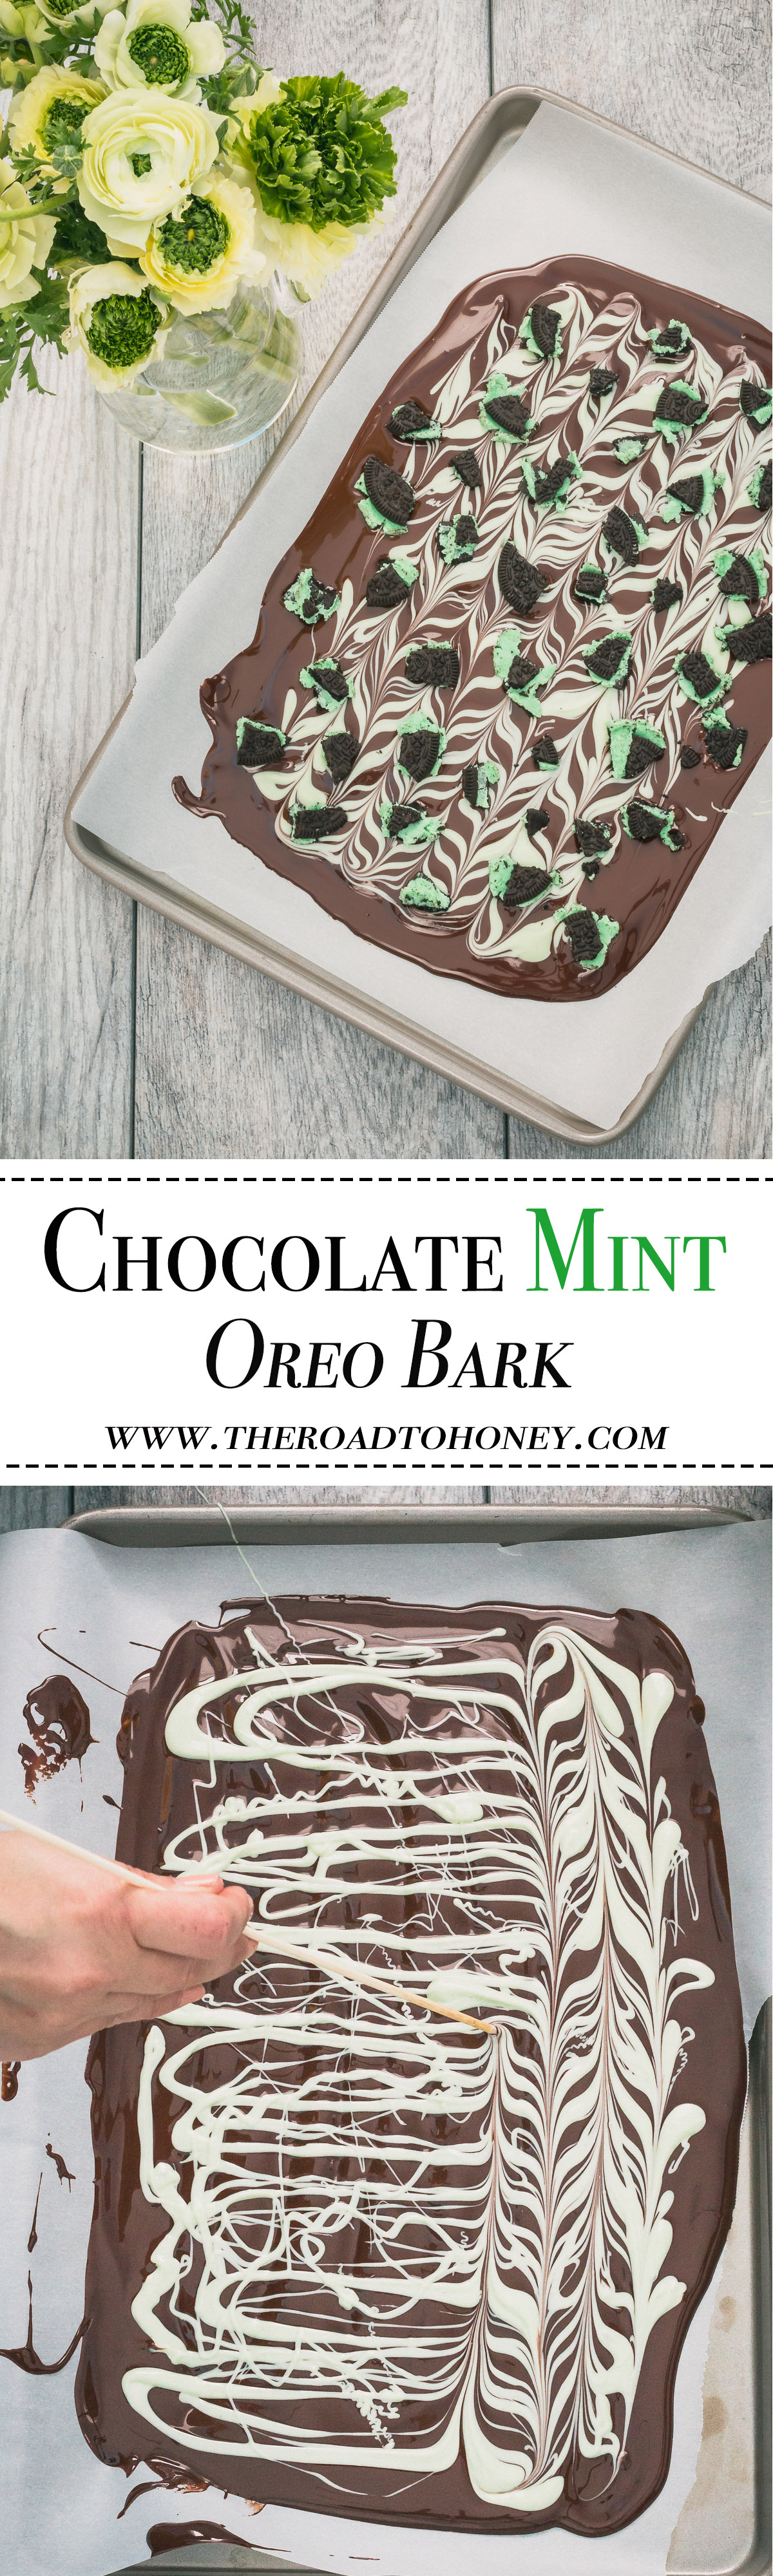 Chocolate Mint Oreo Bark - White Chocolate is swirled into a milk chocolate & then sprinkled with pieces of Chocolate Mint Oreos for an easy, yet fun chocolate treat. Perfect for Saint Patricks Day or any other day that you want to add a little more fun to your chocolate experience.  Click for RECIPE.